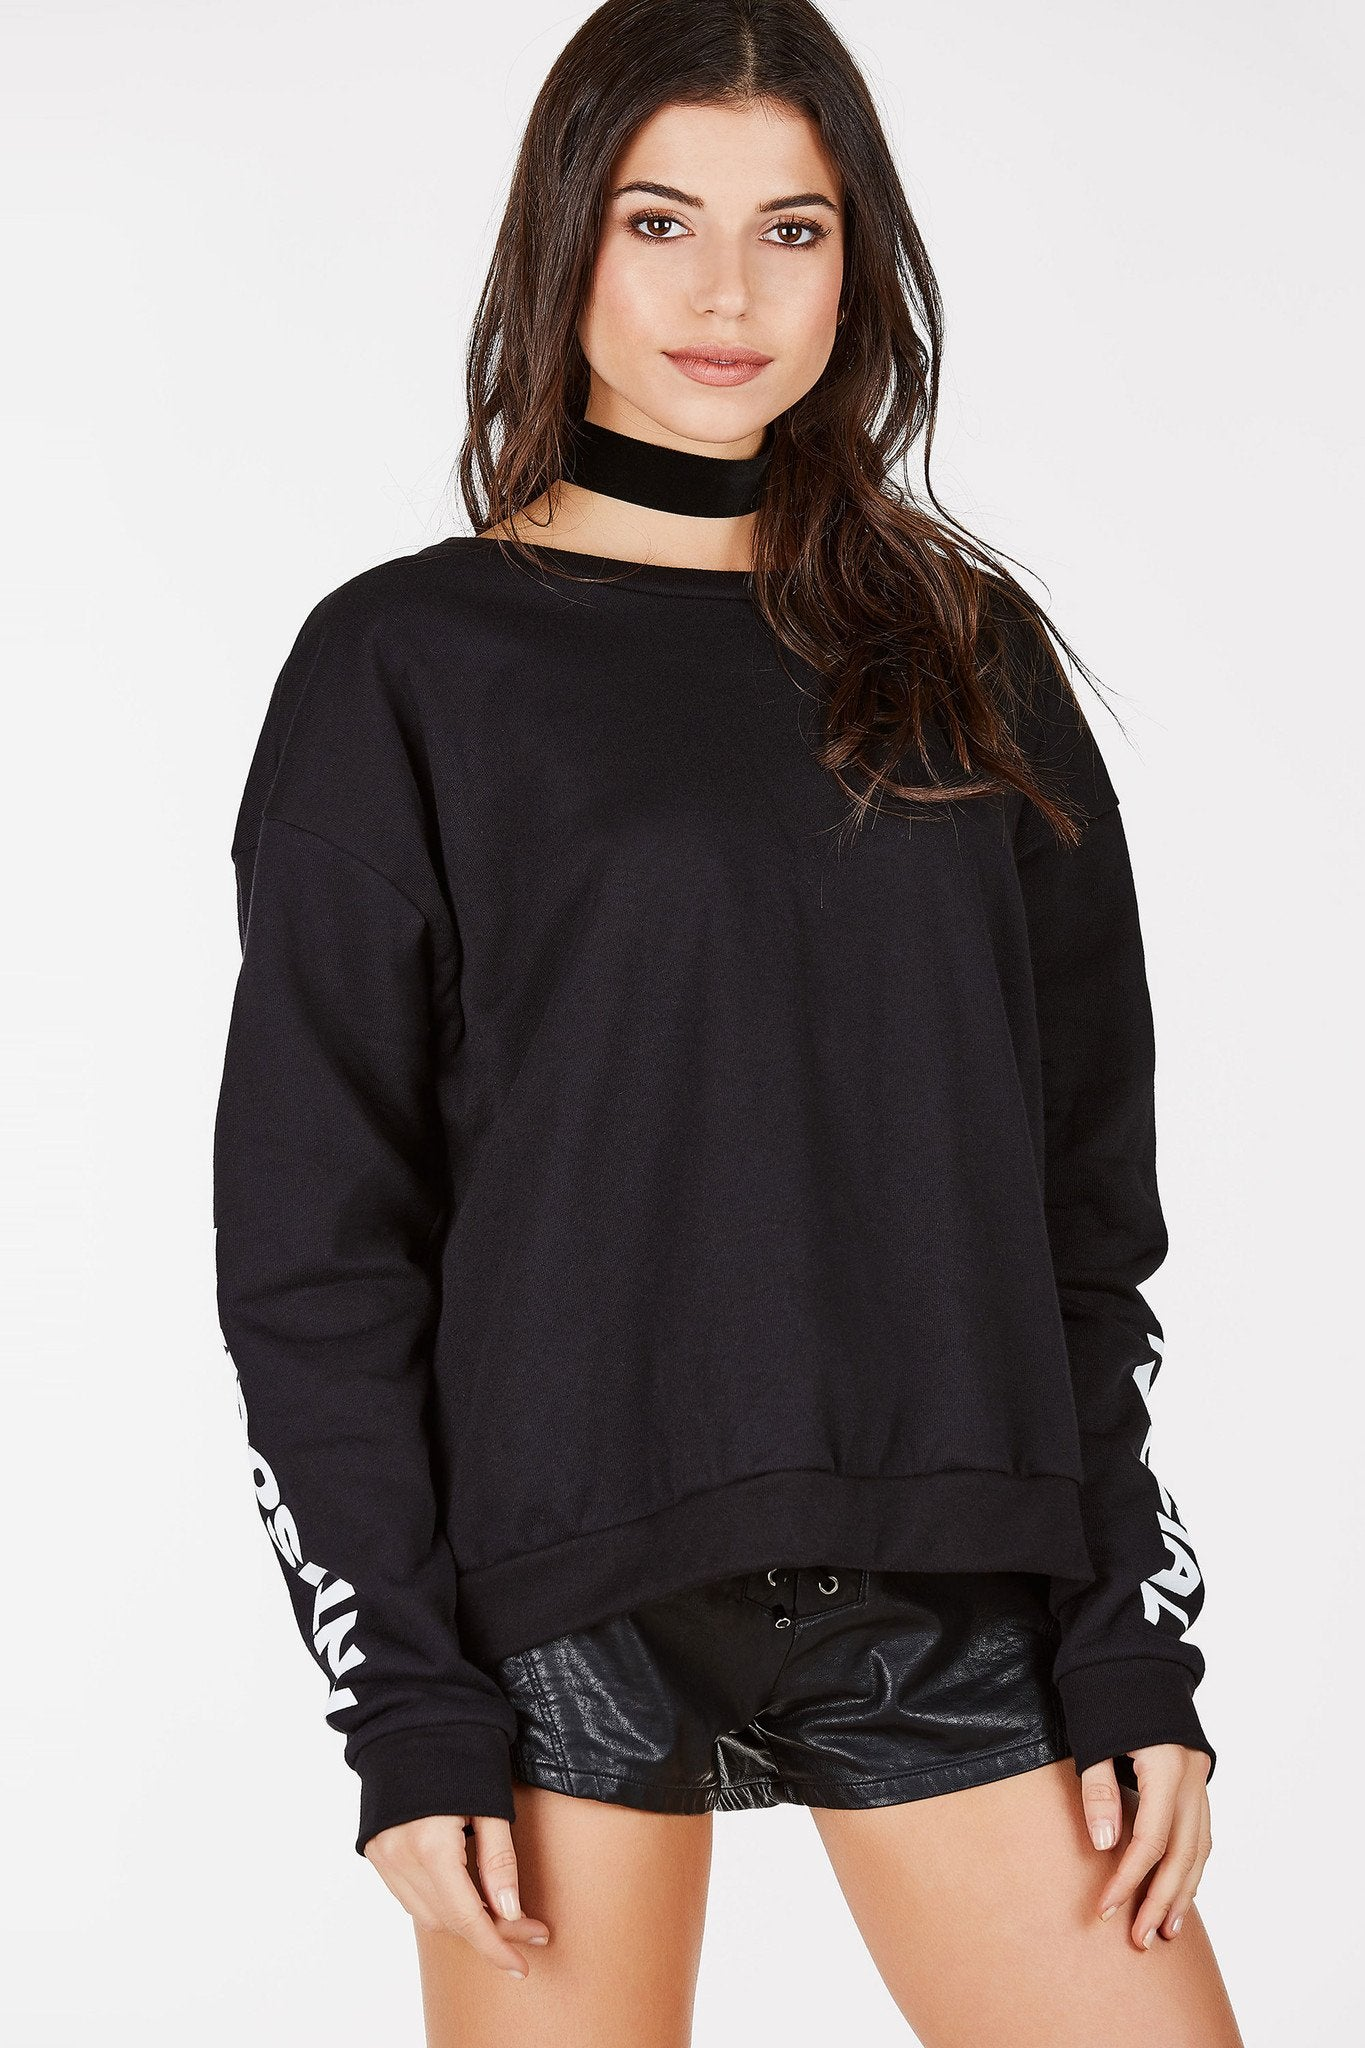 Crewneck sweater with ANTISOCIAL written down the sleeves. Cozy up in this sweater all winter long!